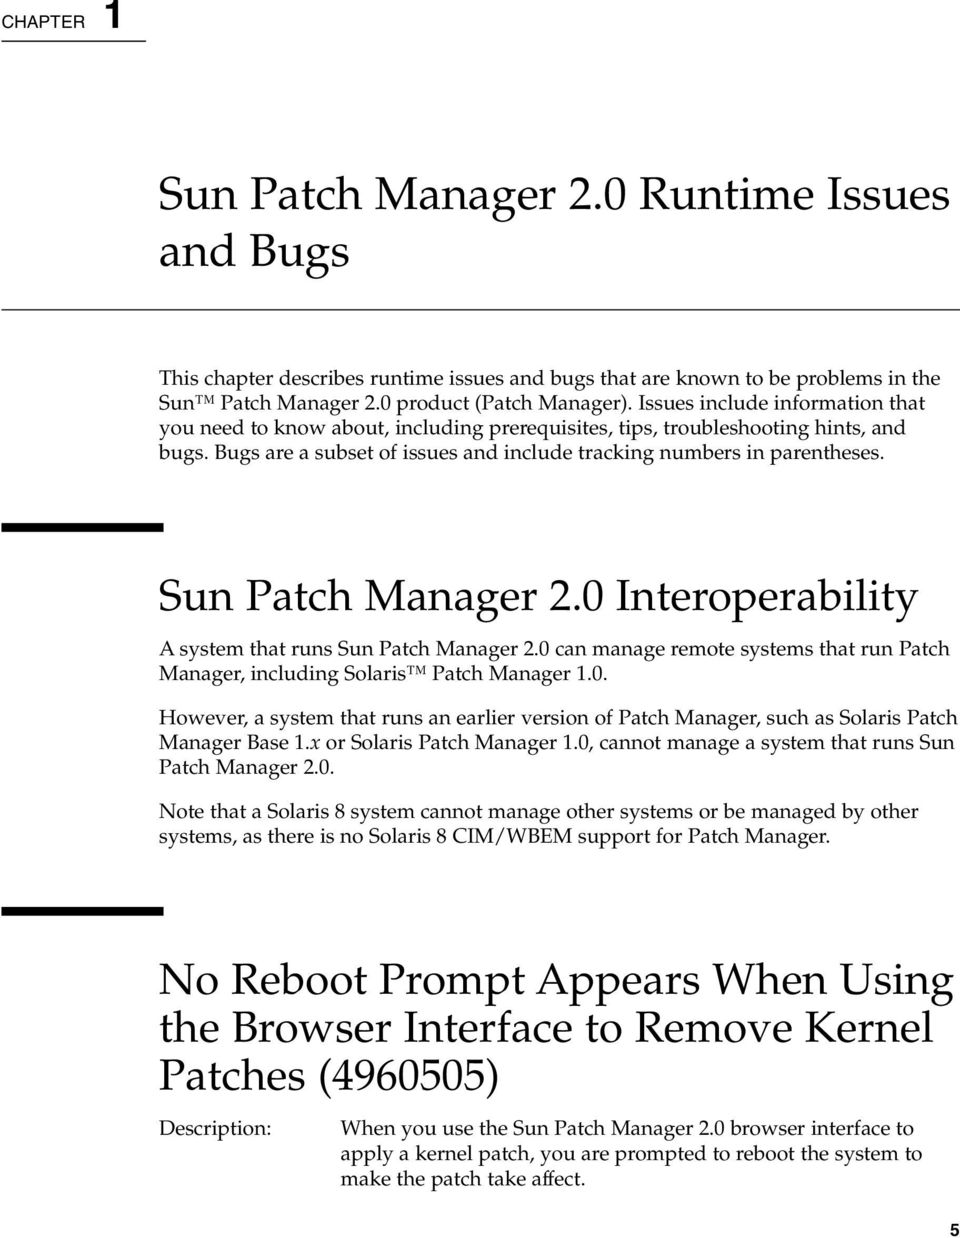 Sun Patch Manager 2.0 Interoperability A system that runs Sun Patch Manager 2.0 can manage remote systems that run Patch Manager, including Solaris Patch Manager 1.0. However, a system that runs an earlier version of Patch Manager, such as Solaris Patch Manager Base 1.